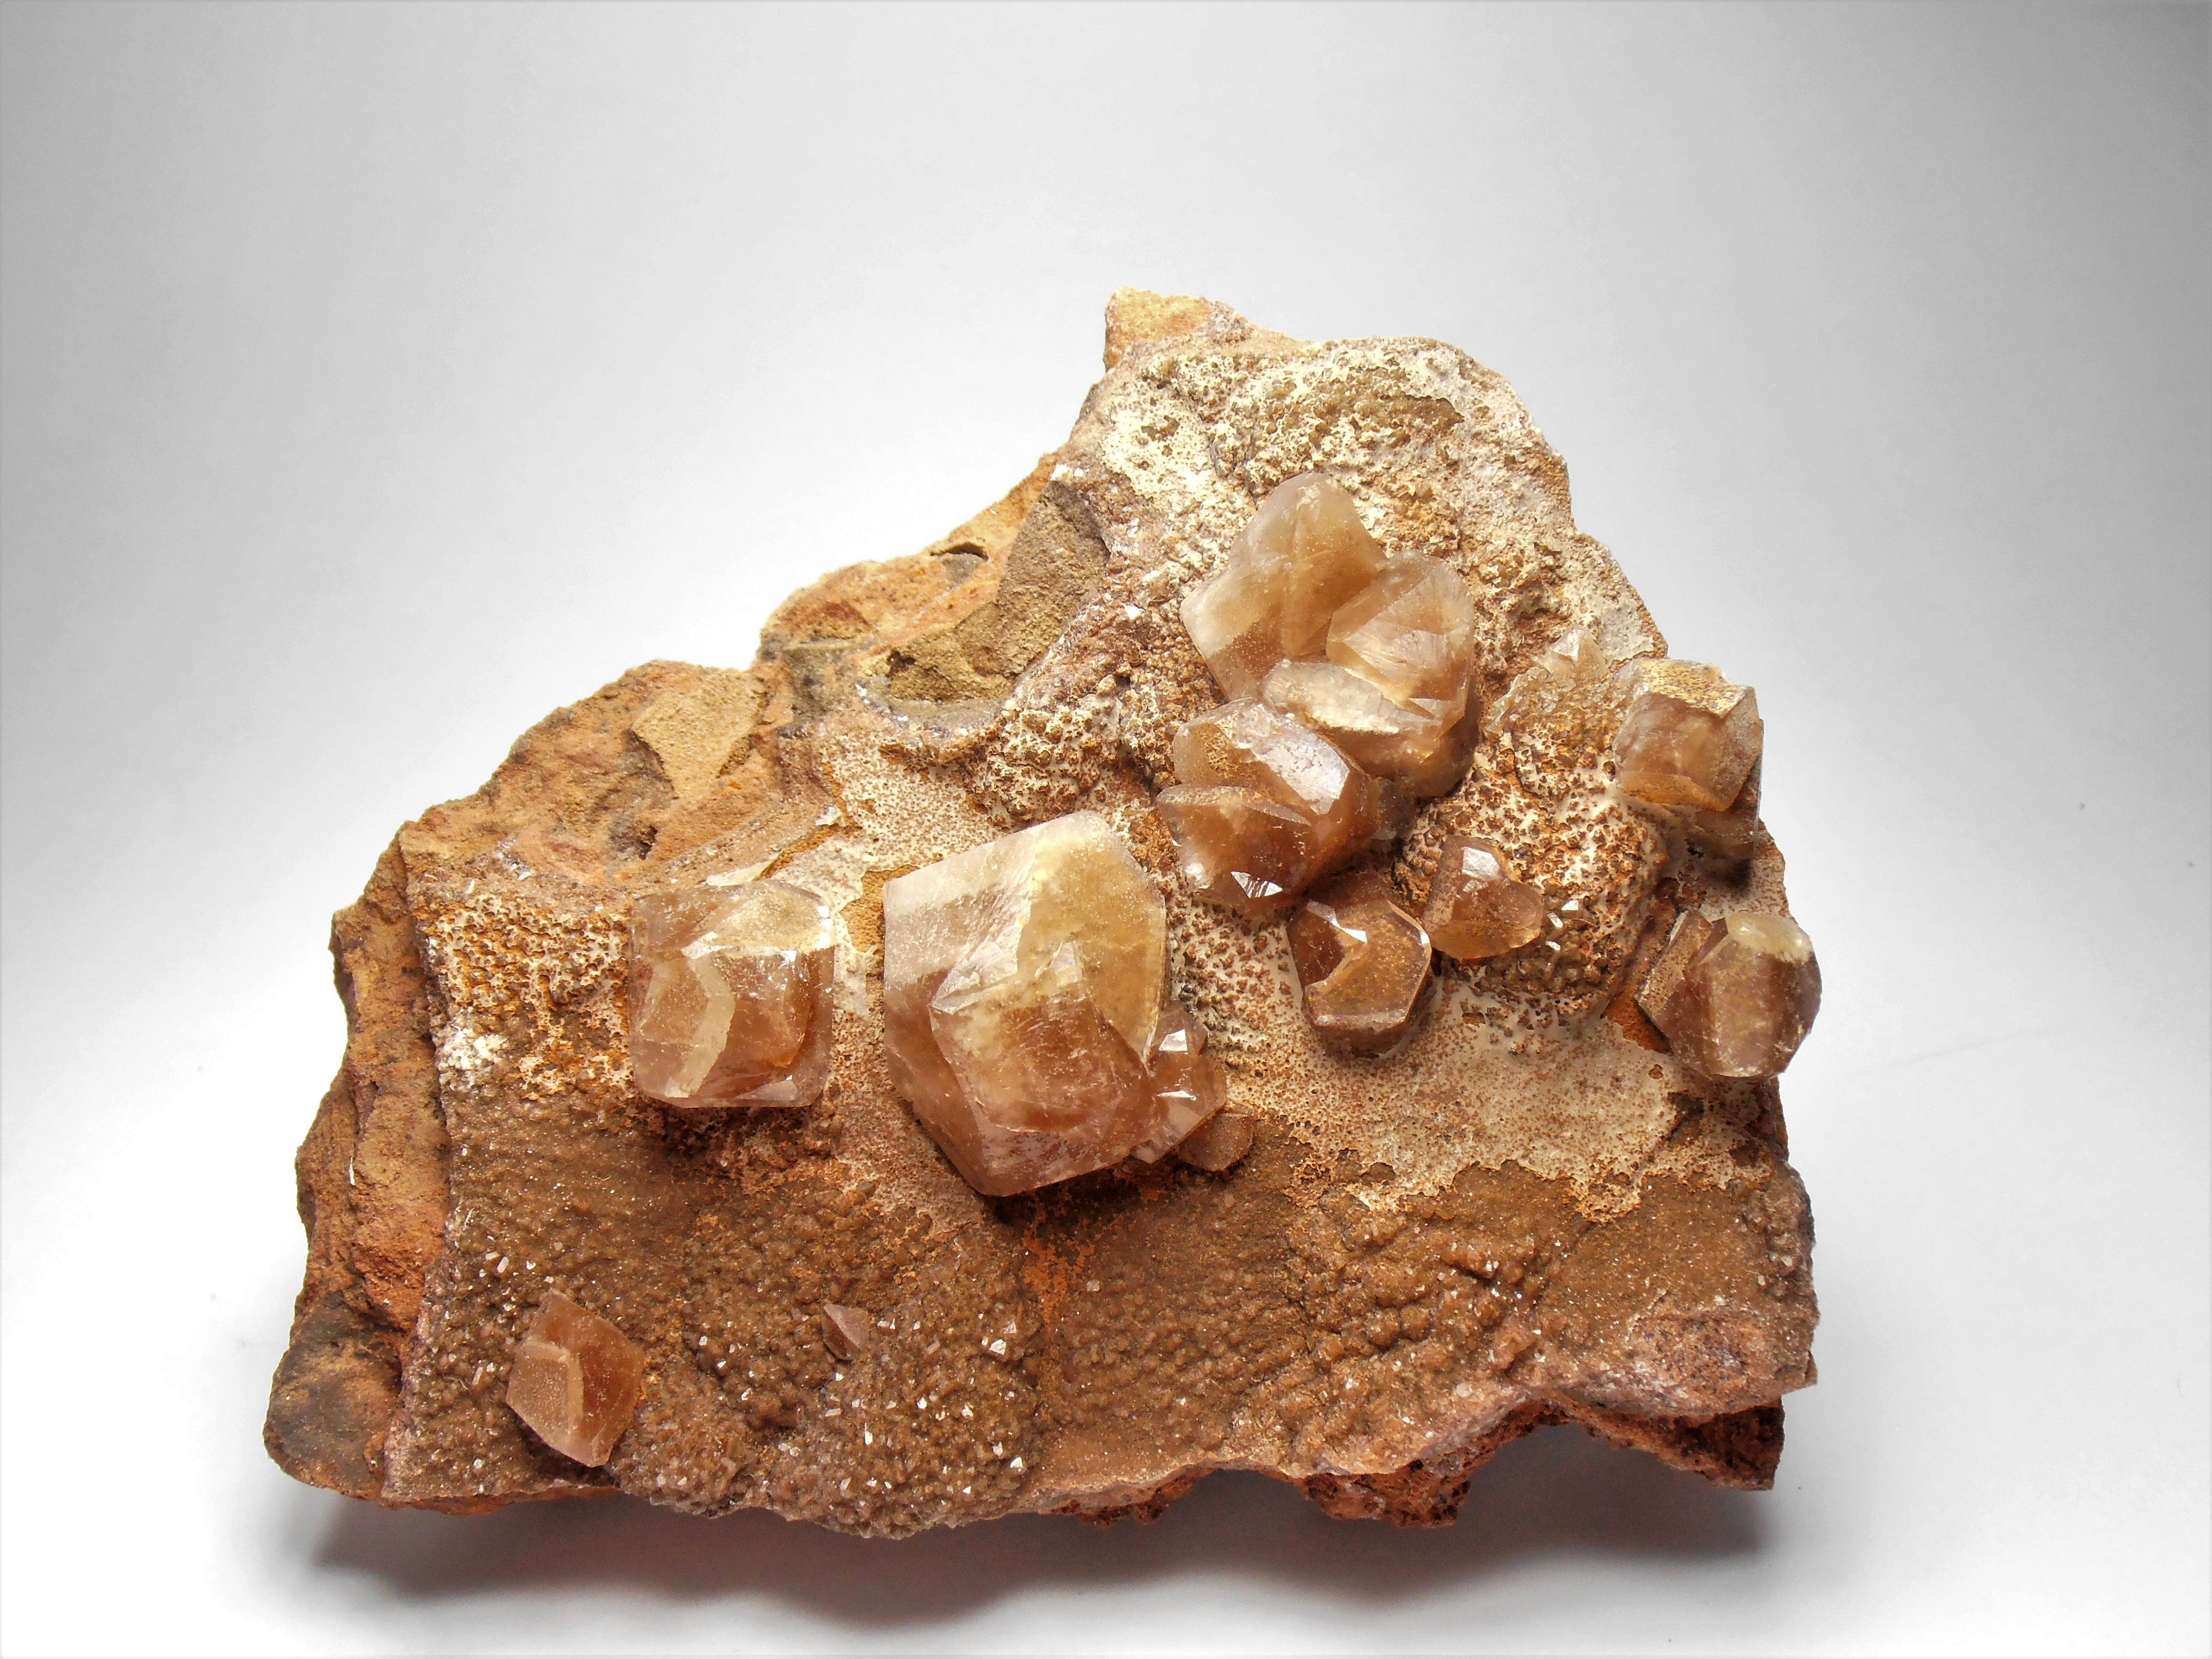 Calcite Crystal Twins from the Santa Eulalia District, Chihuahua